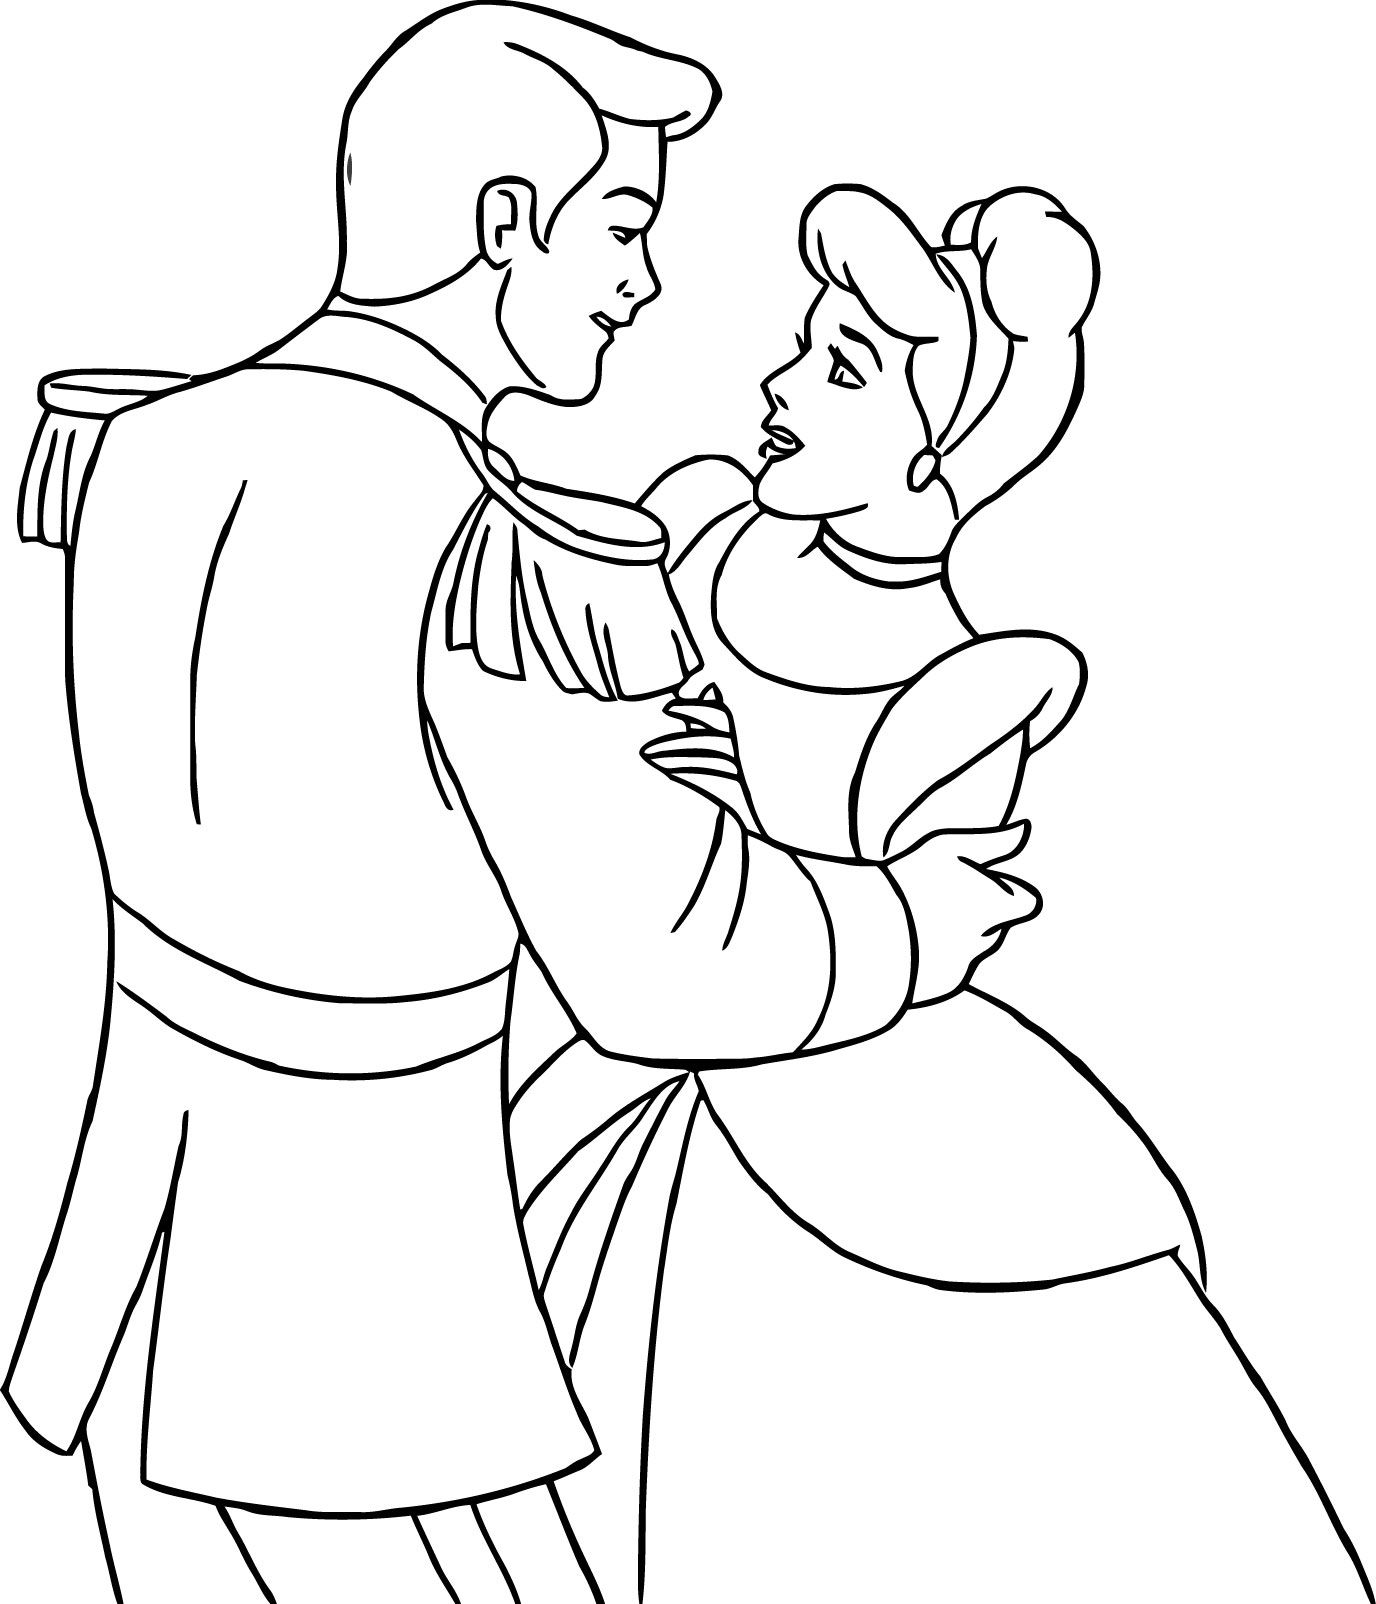 Cinderella And Prince Charming Coloring Pages Tahed Lugemine